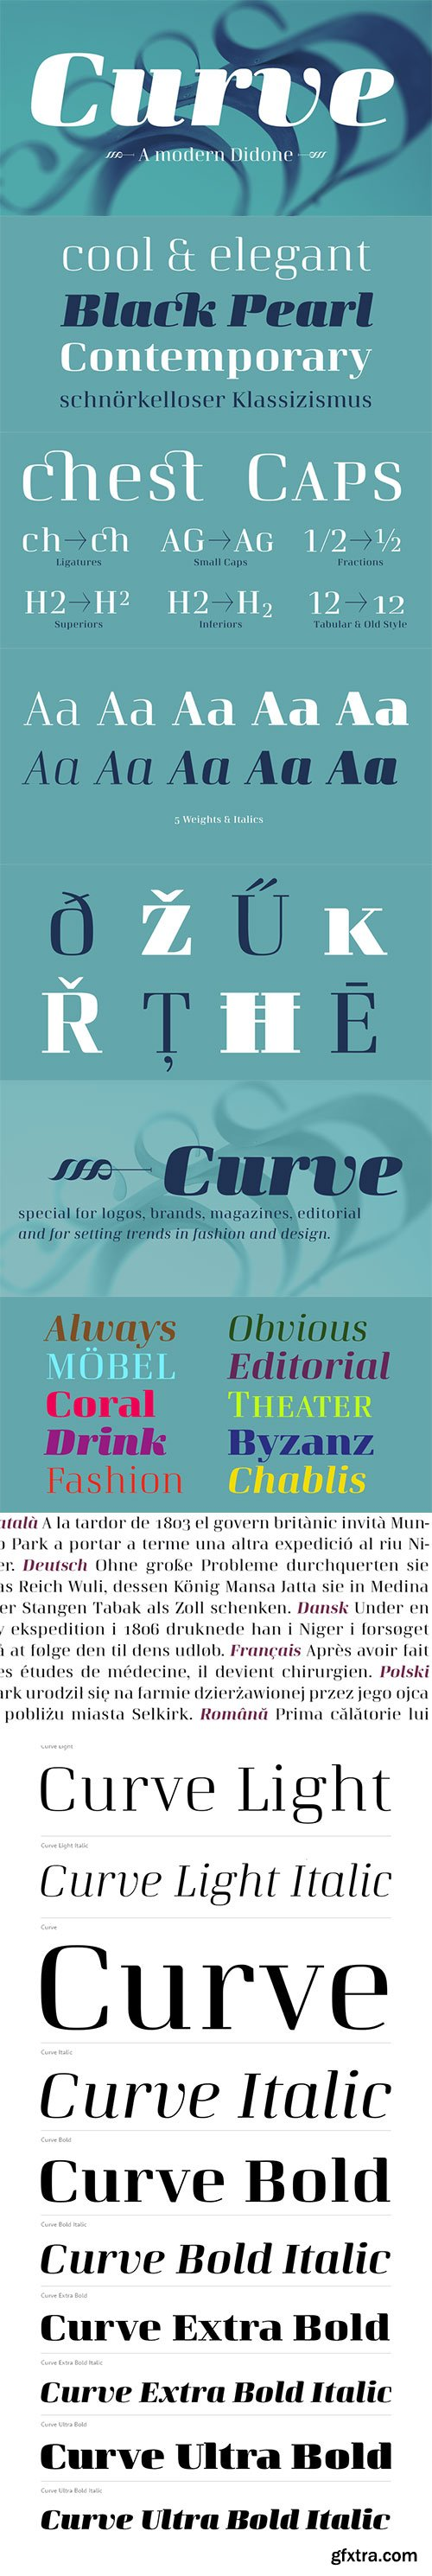 Curve - Modern Neo-Classical Typeface 10xOTF $205